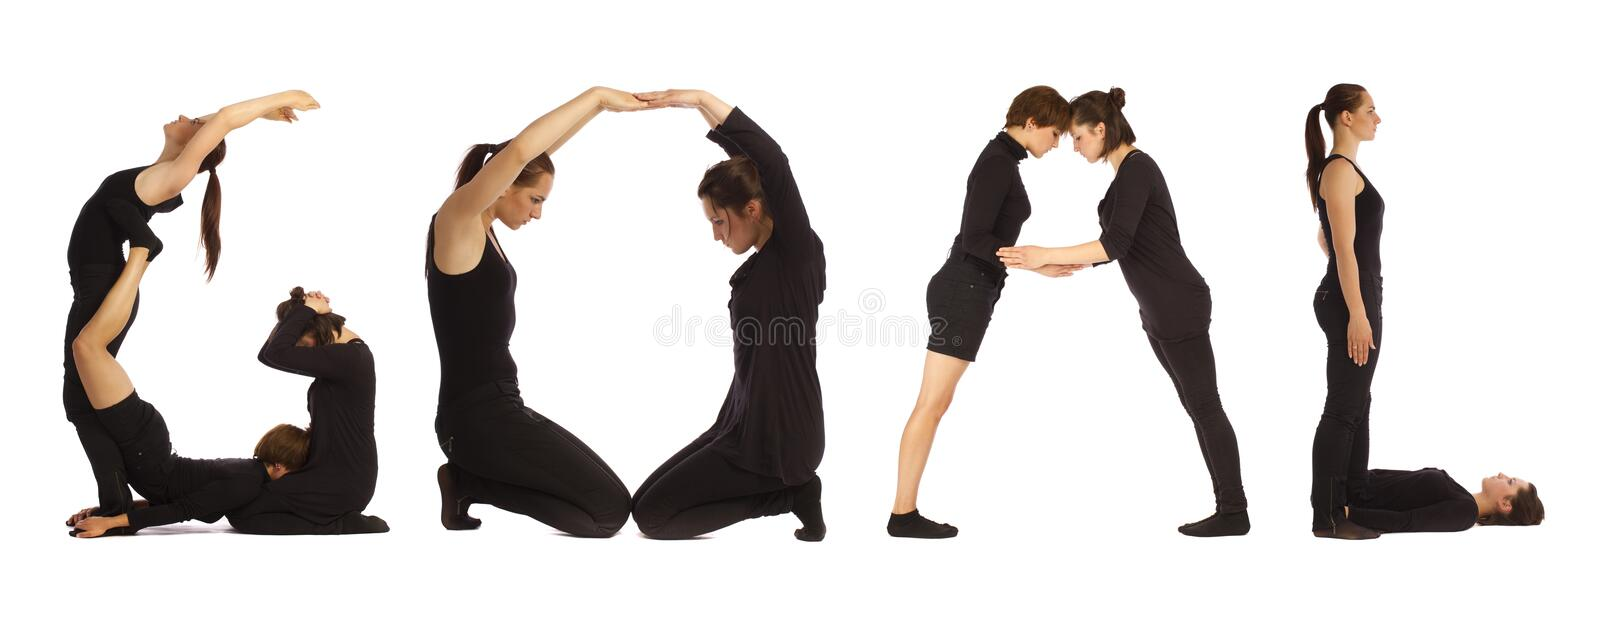 Black dressed people forming GOAL word. Over white background stock photo